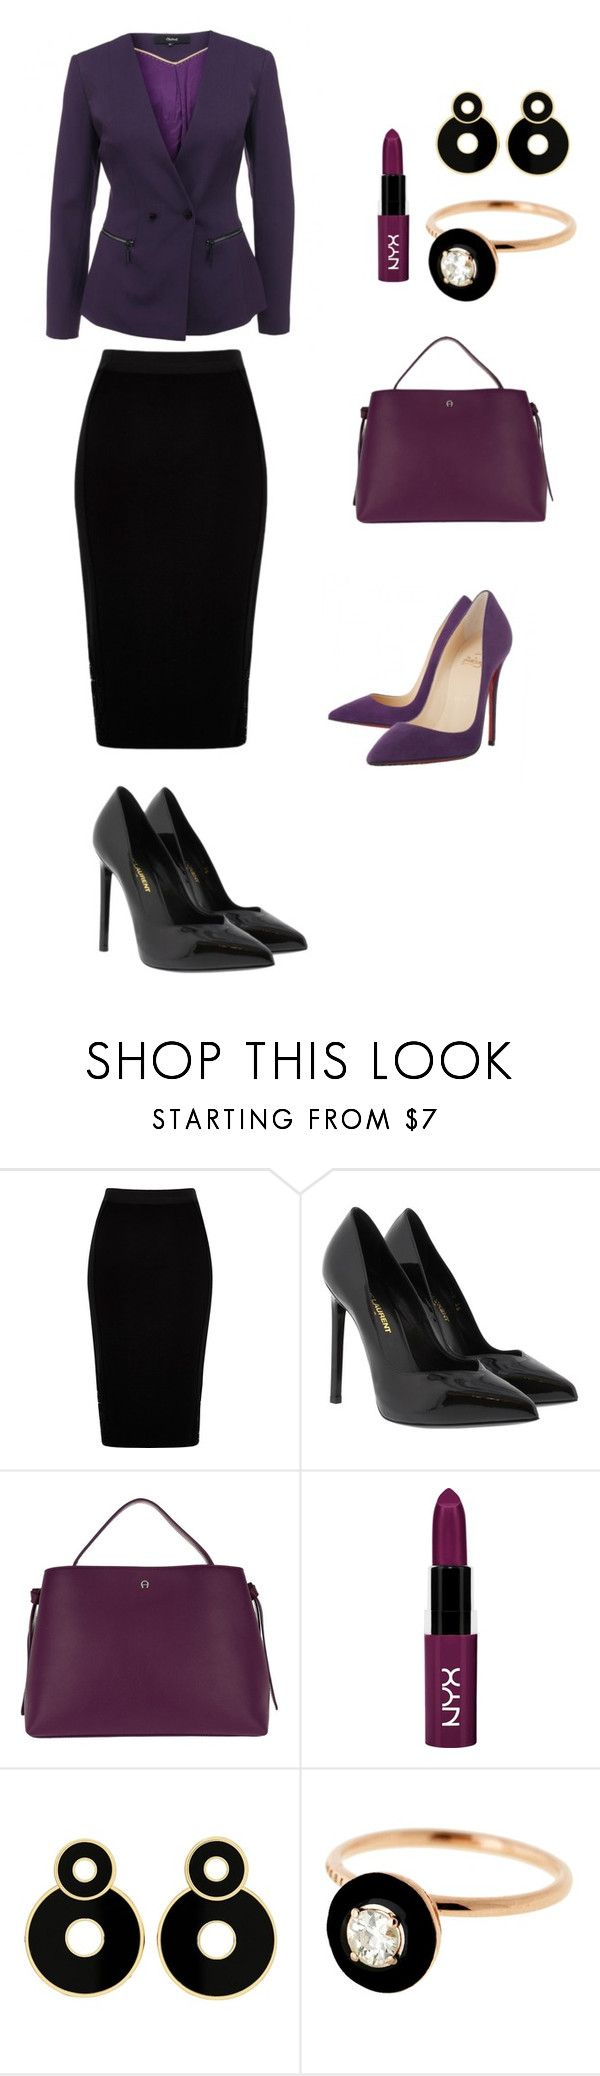 """""""Violet dream"""" by anna-cherepanina on Polyvore featuring мода, River Island, Yves Saint Laurent, Etienne Aigner, NYX и Selim Mouzannar"""